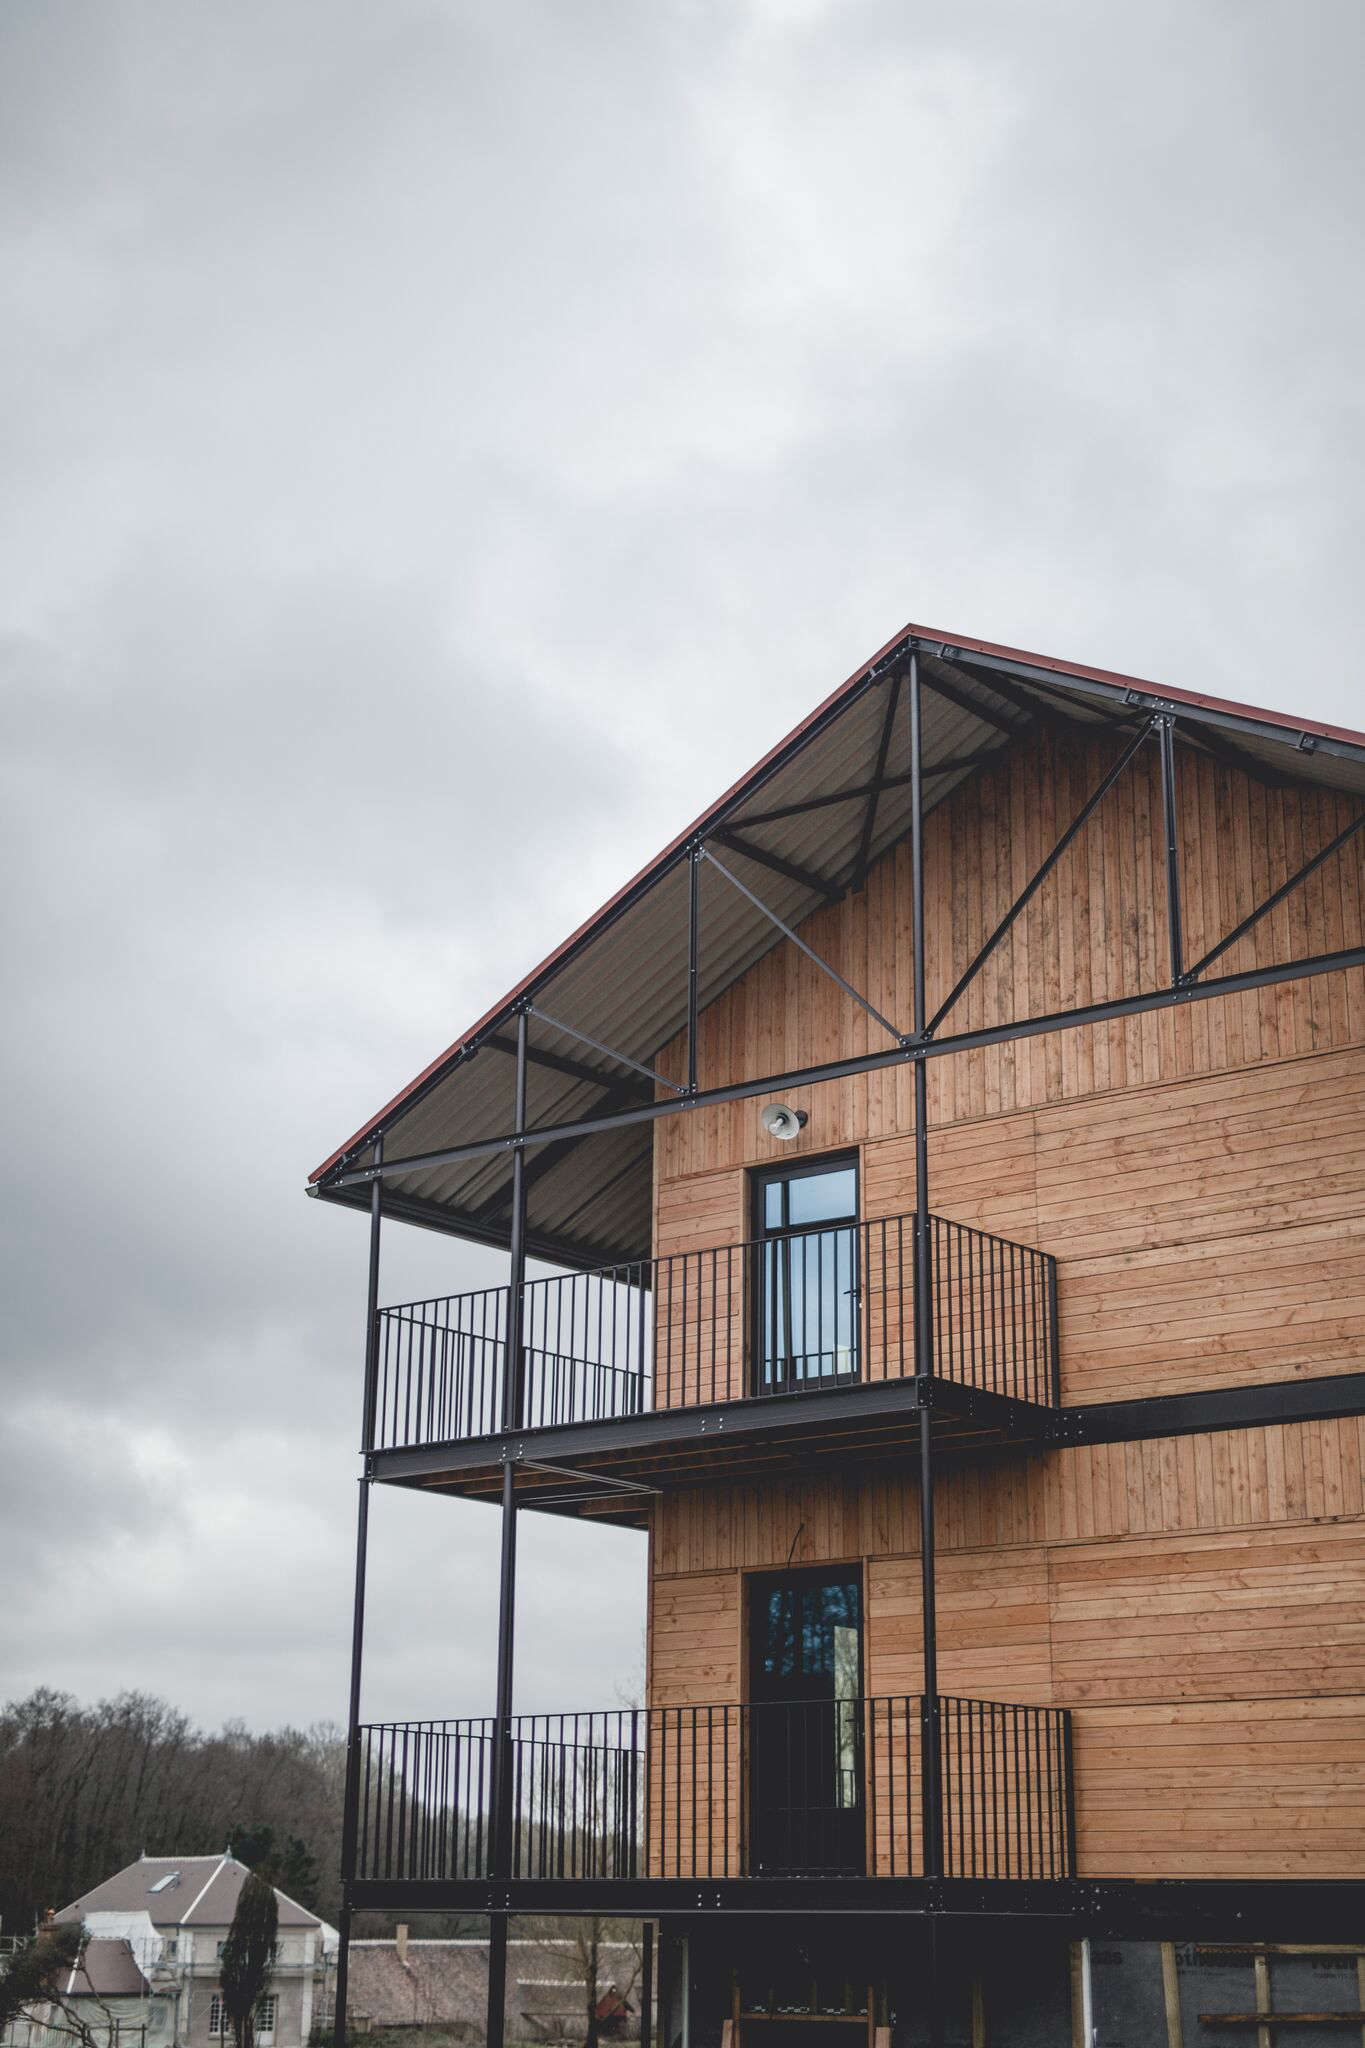 The Be-Poles team turned existing barns into hotel quarters that combine &#8